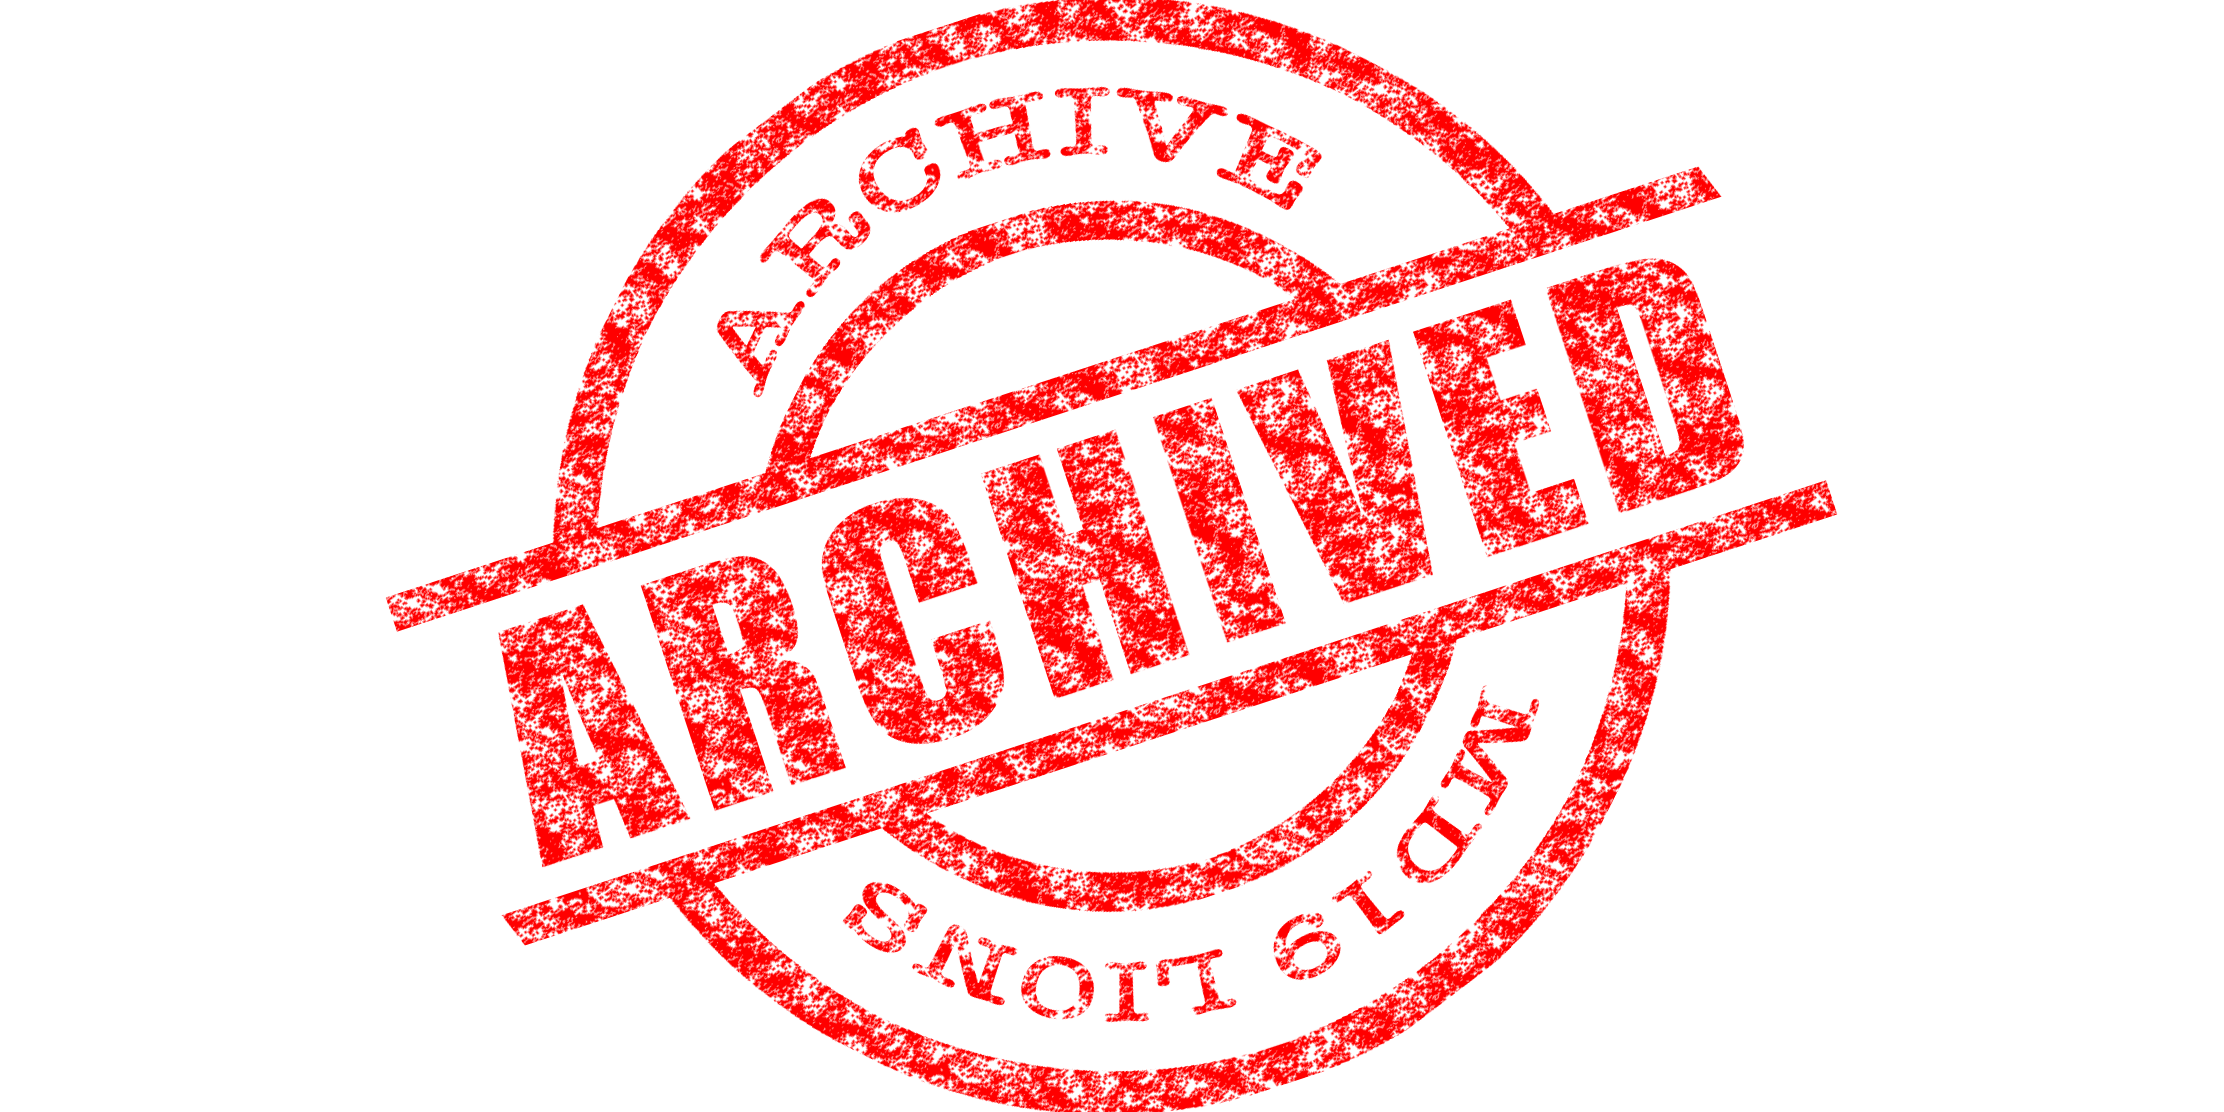 Archive Stamp